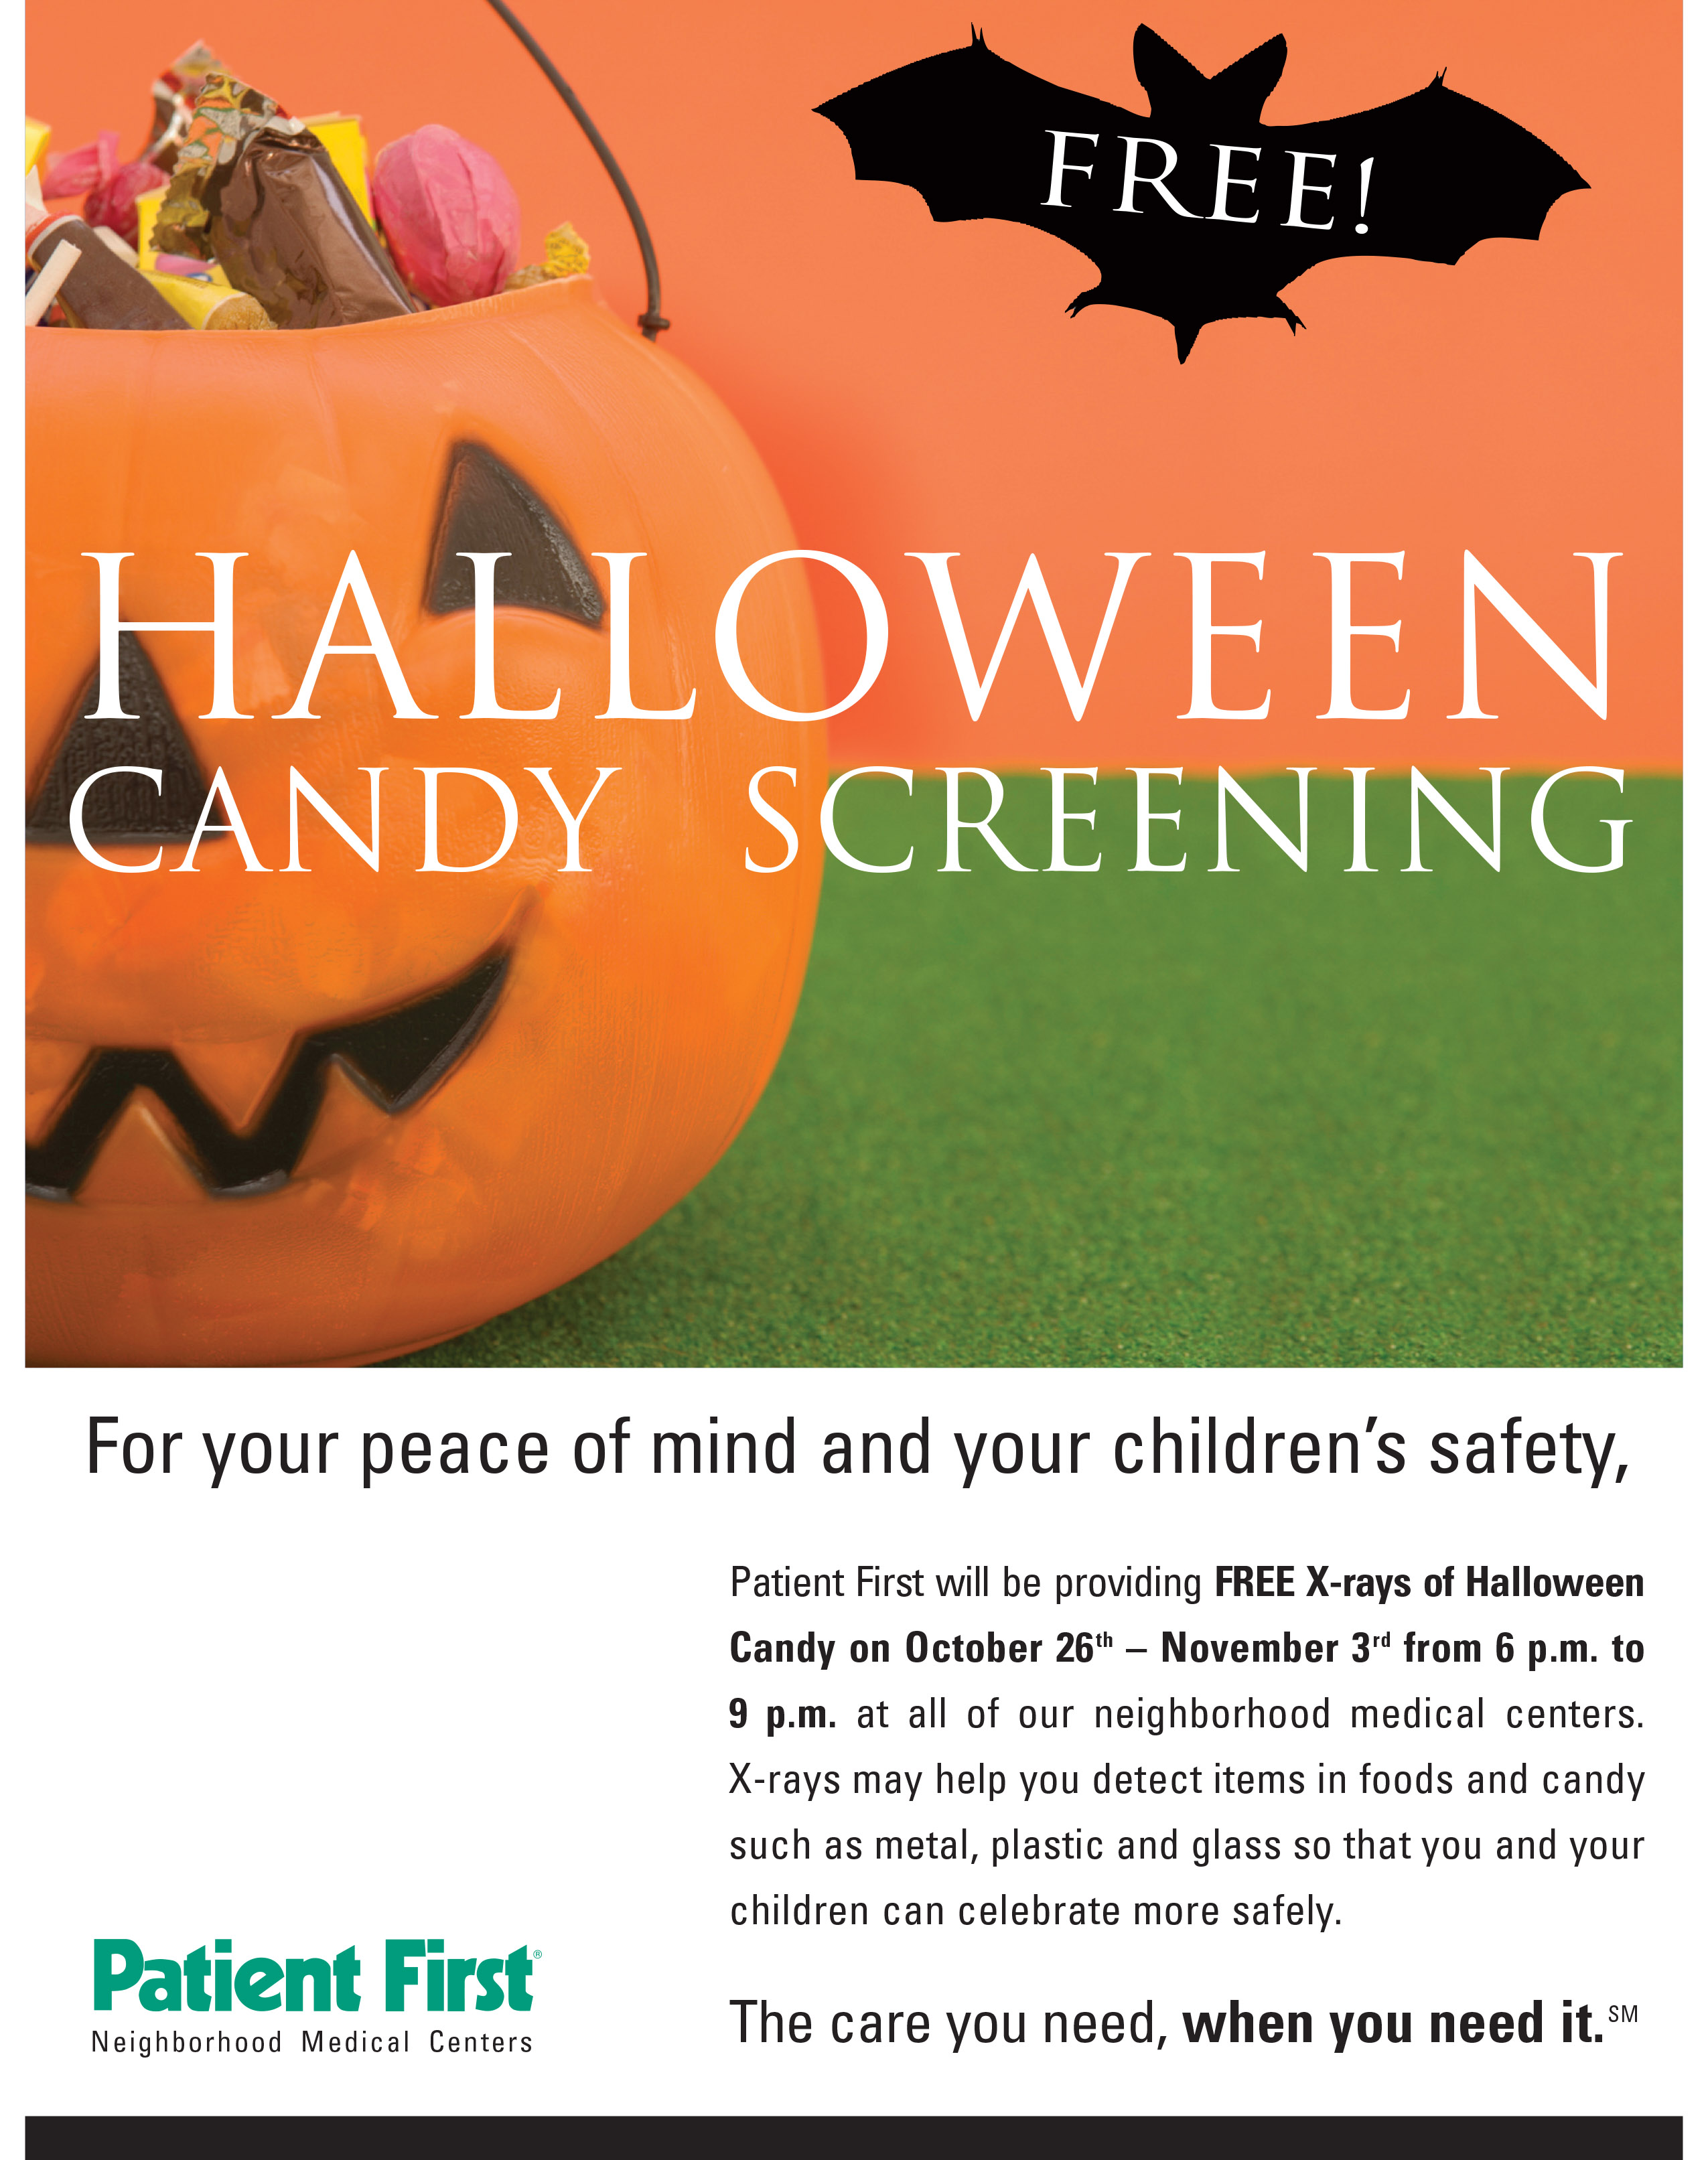 patient first is offering free digital x-ray imaging of halloween